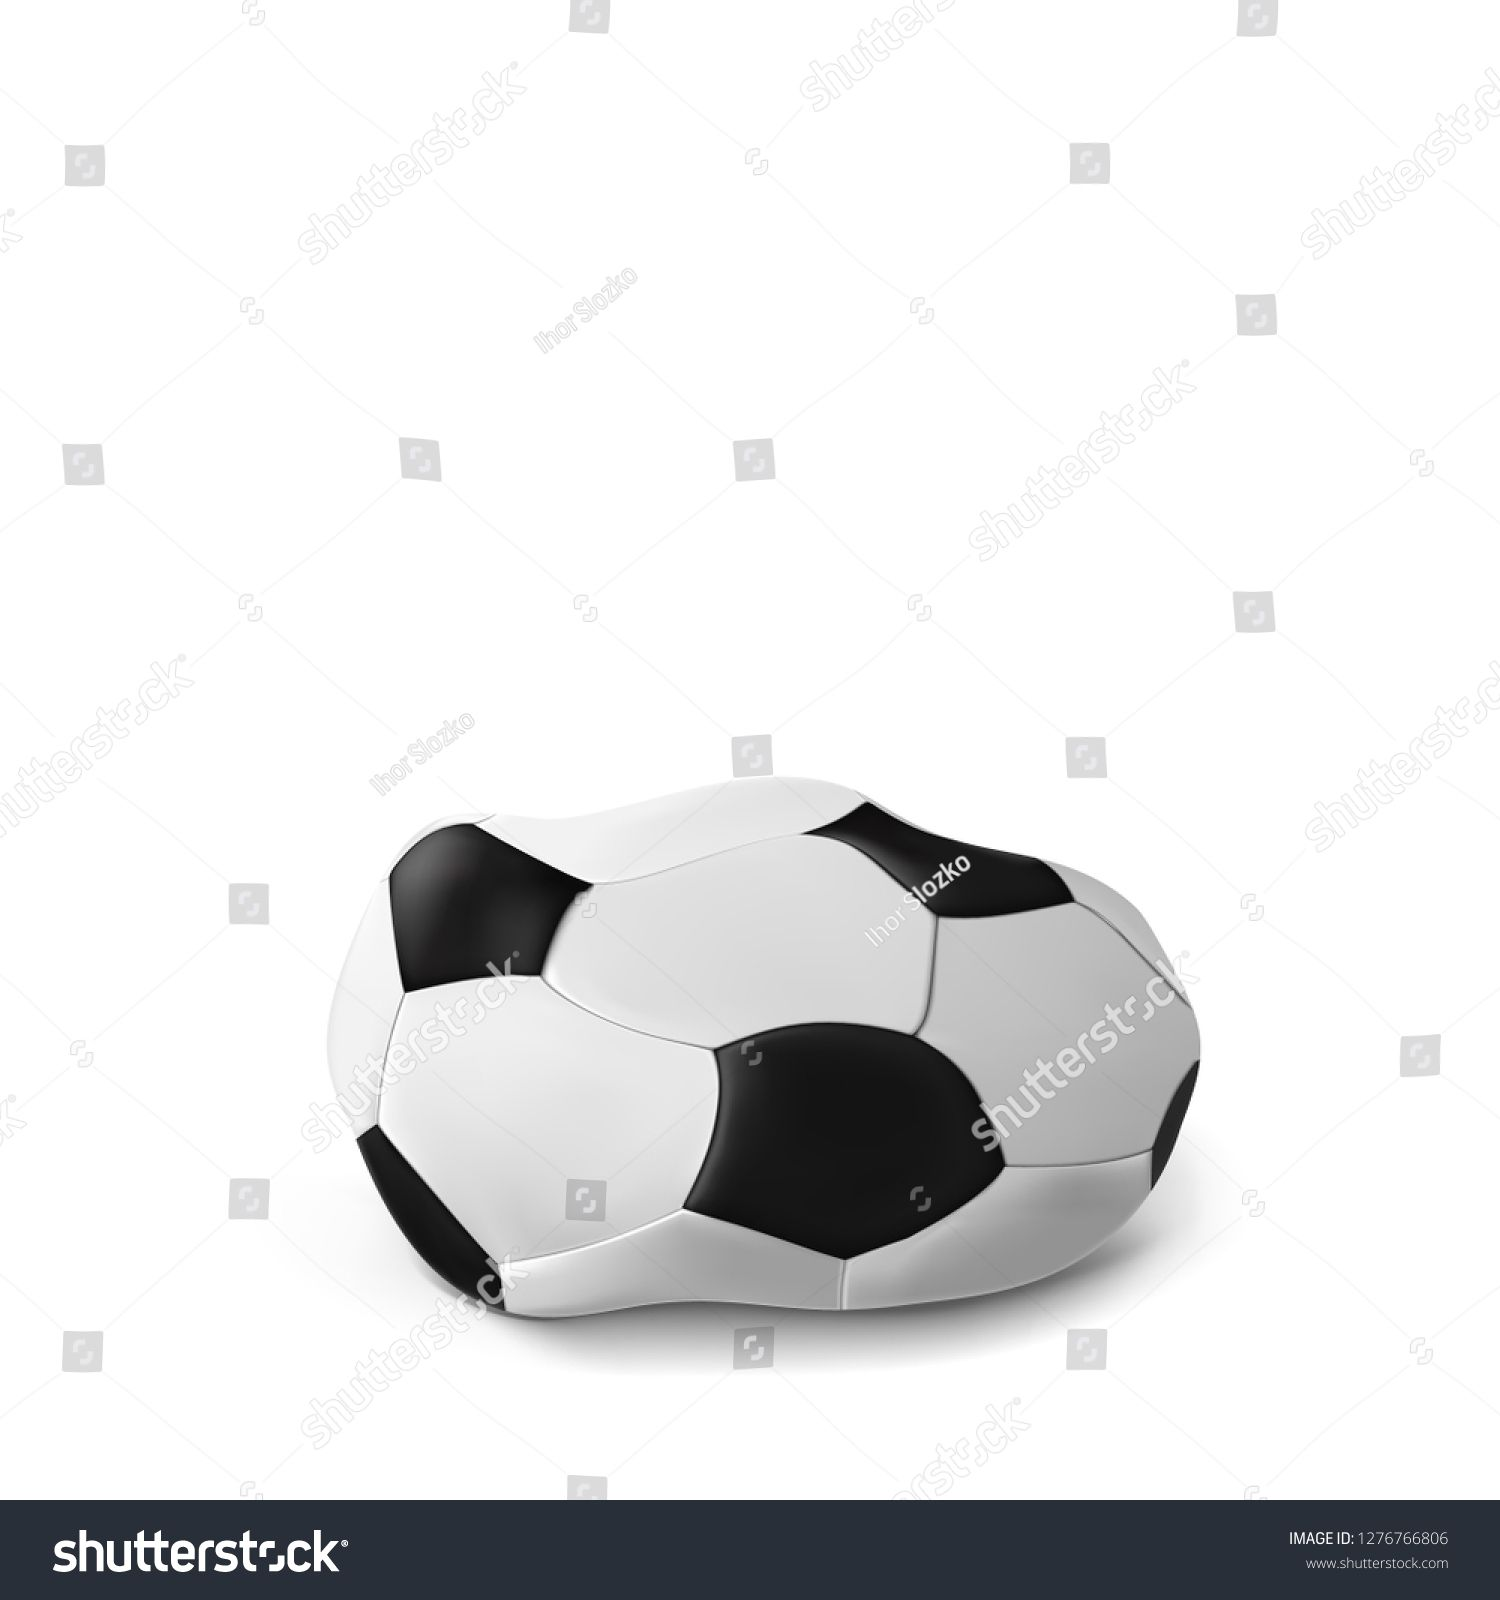 Download Realistic Deflated Football Soccer Ball Isolated On White Background Vector Illustration Of The Deflated Ball Classic Design Ad Soccer Ball Soccer Football